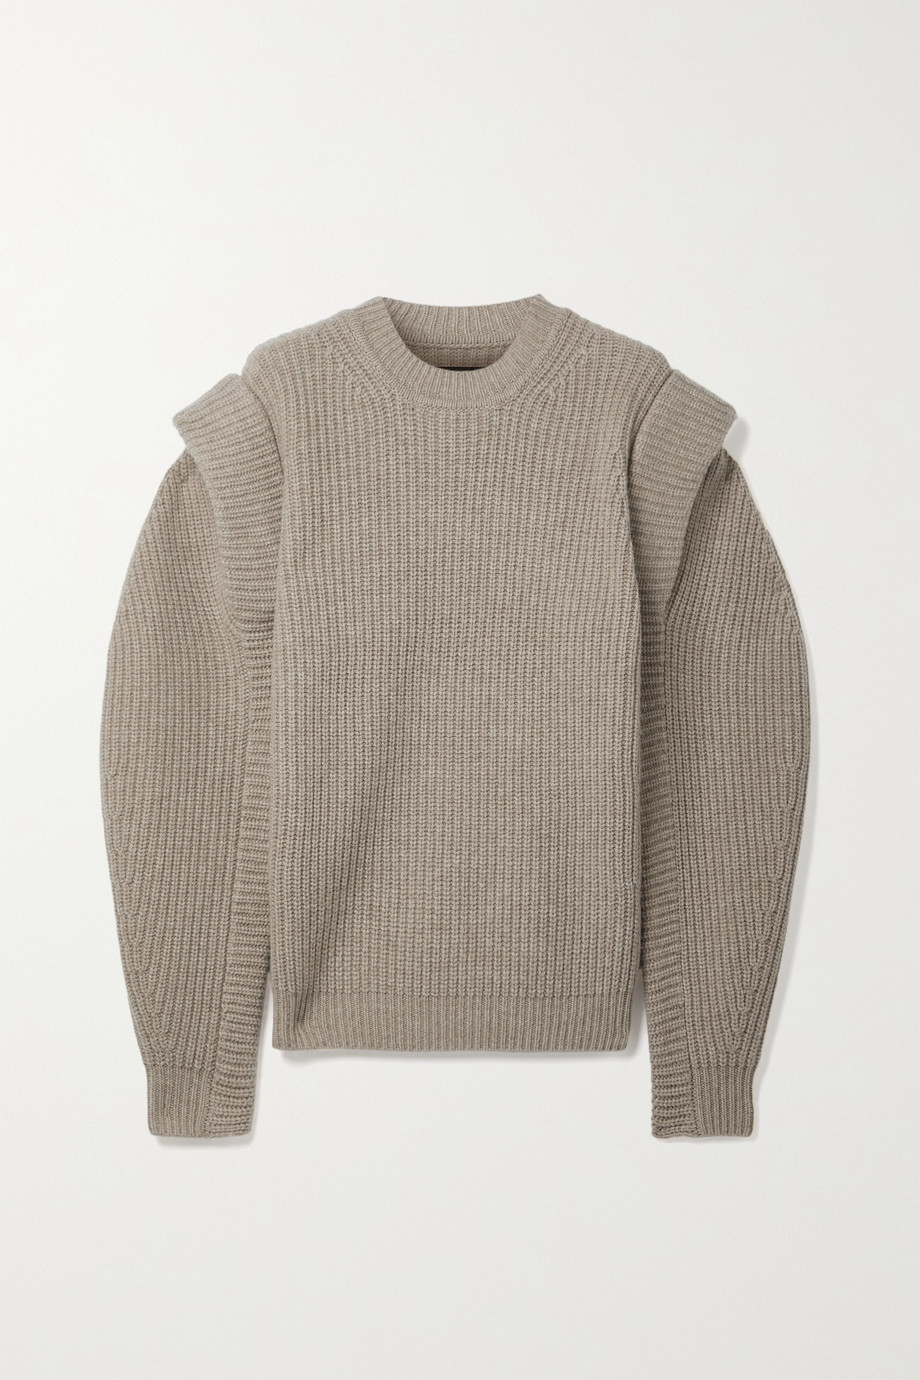 ISABEL MARANT Bolton ribbed merino wool and cashmere-blend sweater